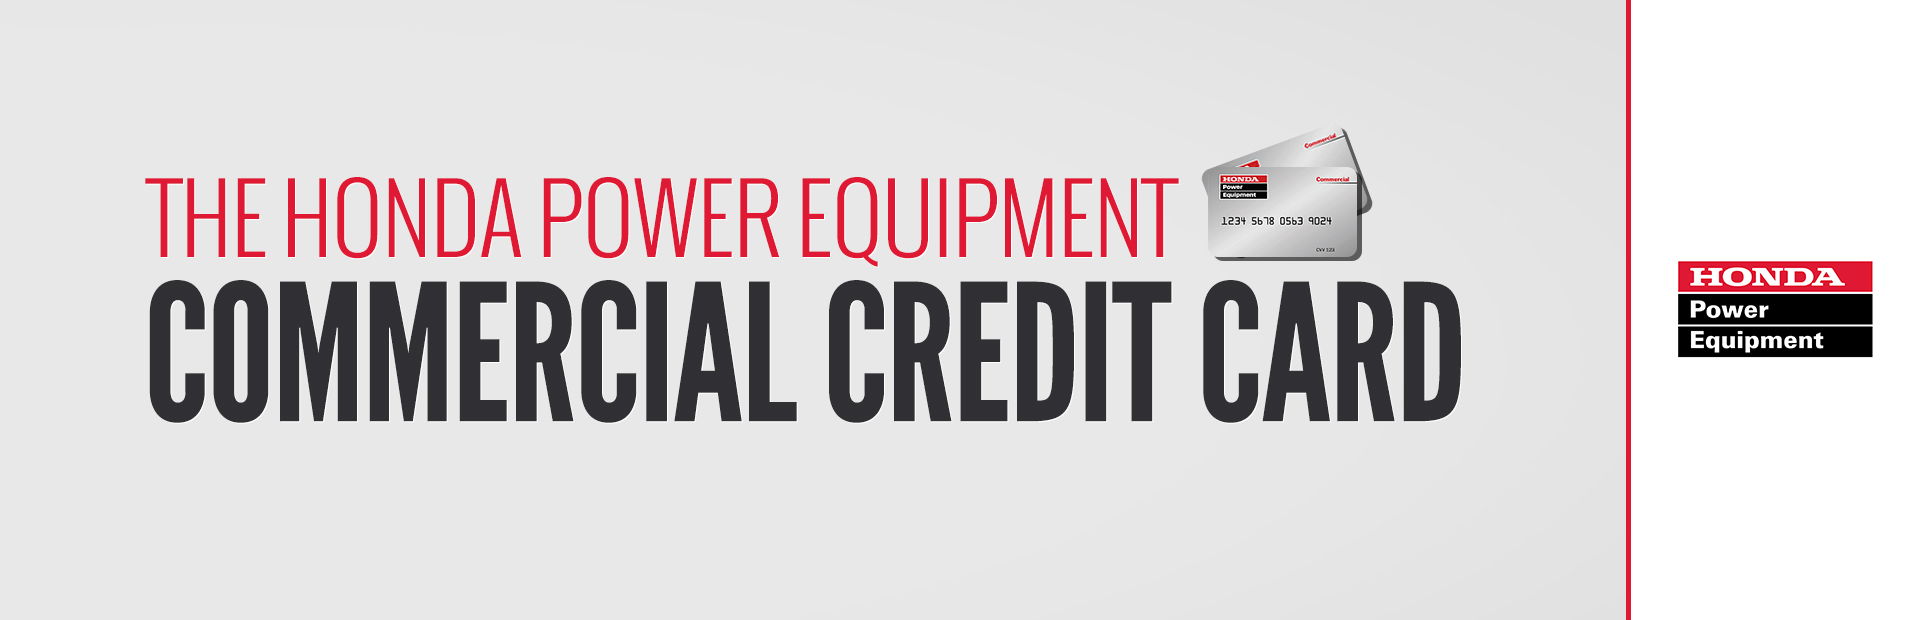 Honda Power Equipment: The Honda Power Equipment Commercial Credit Card